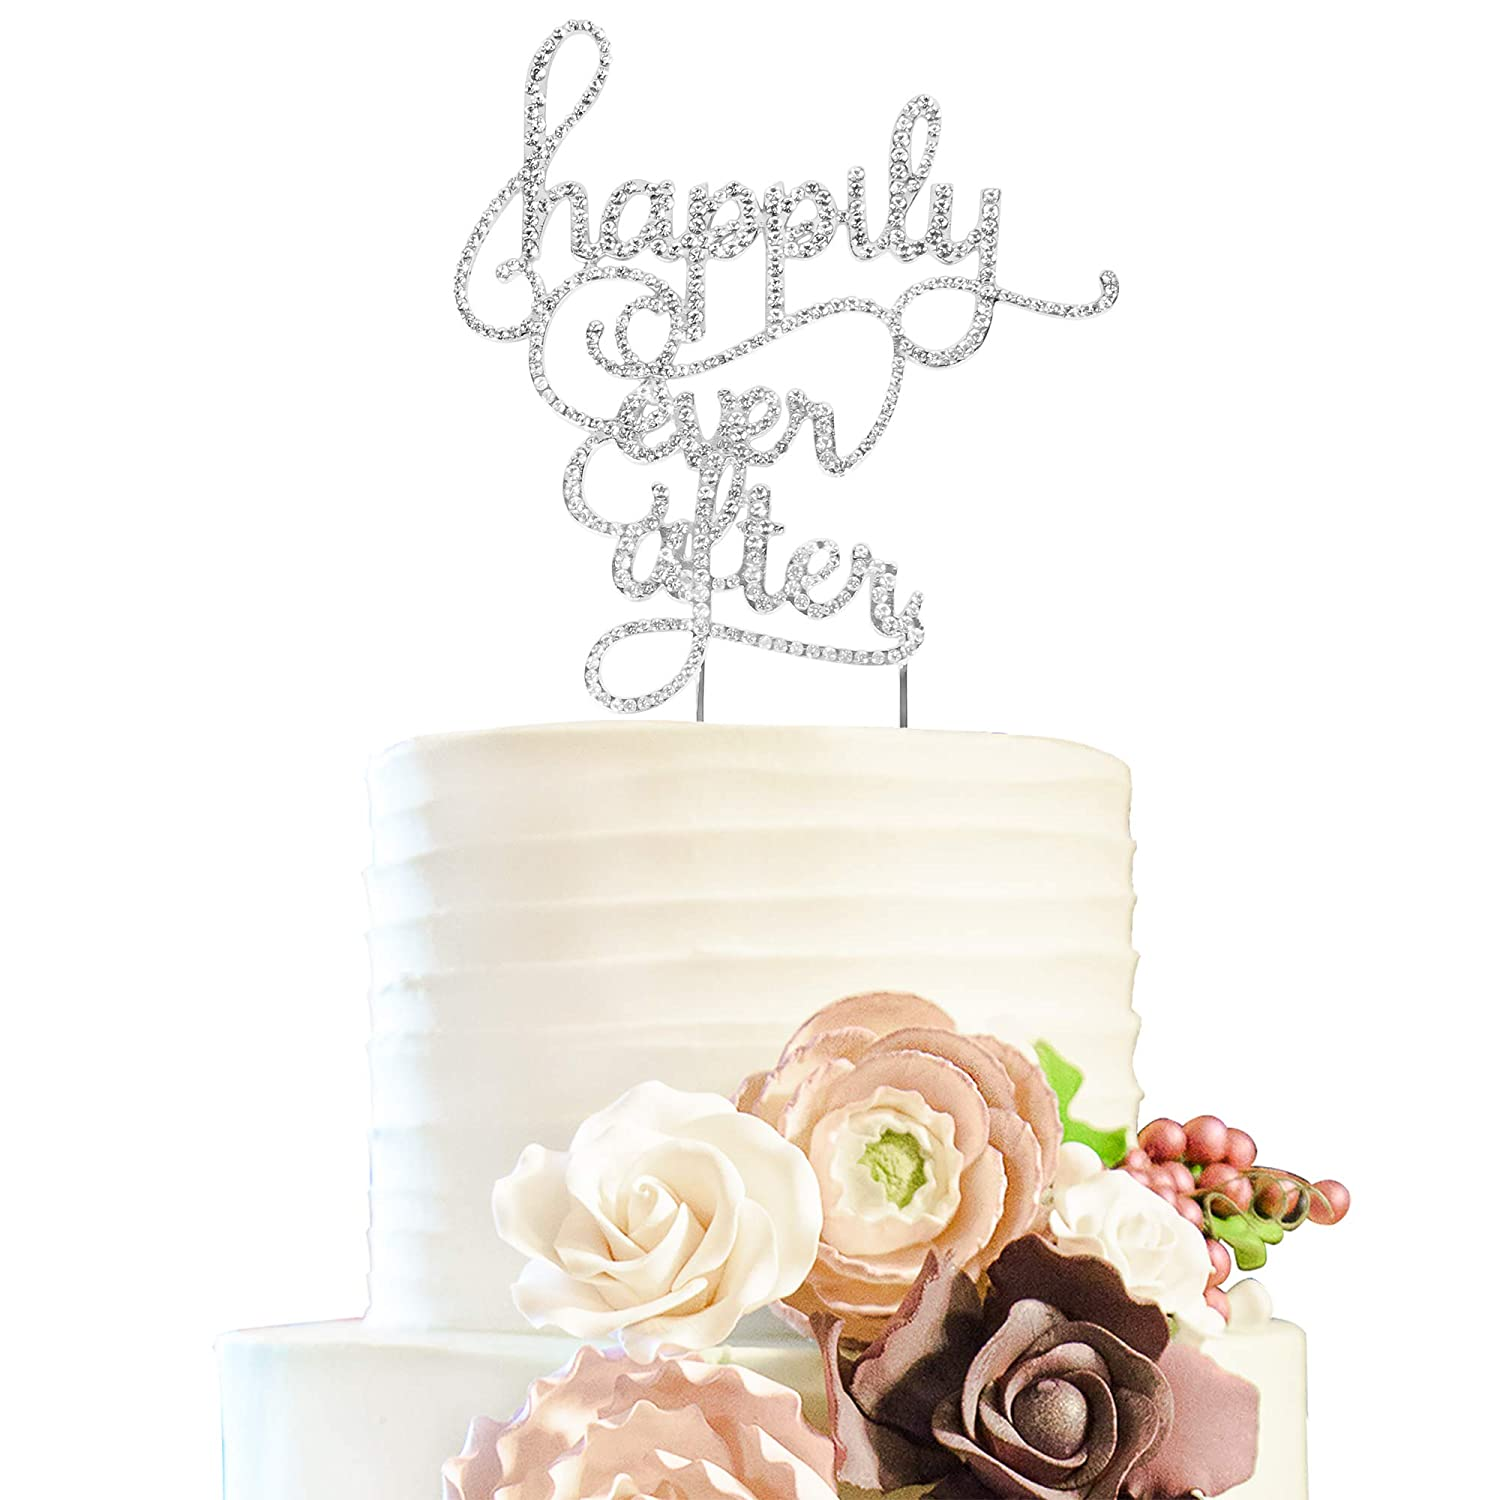 19b2a1e43de Happily Ever After Wedding Rhinestone Cake Topper Bridal Shower Anniversary  Crystal Decoration - Silver.  Amazon.com  Grocery   Gourmet Food